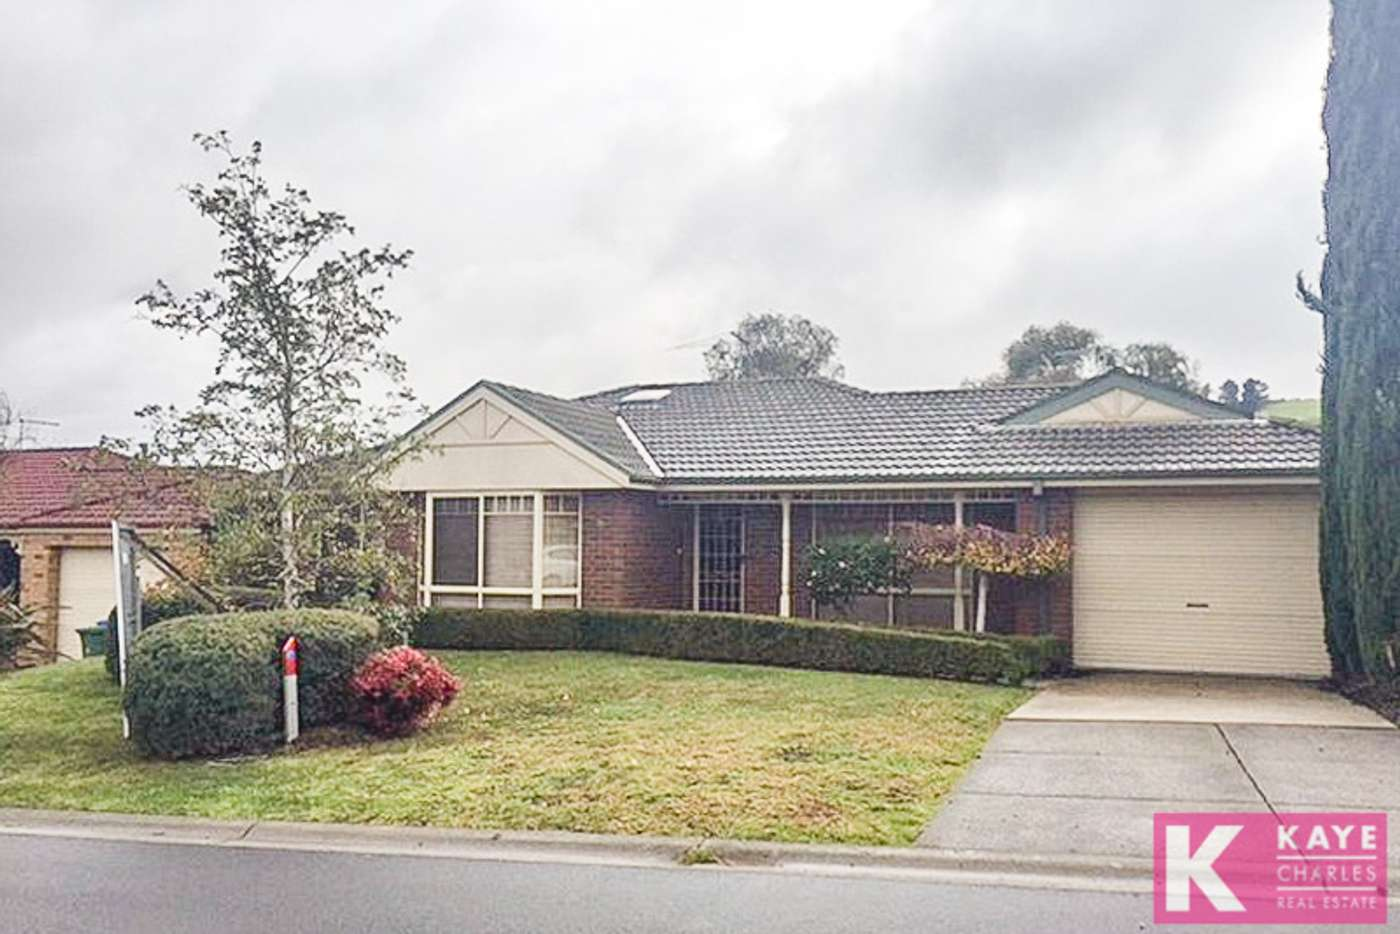 Main view of Homely house listing, 76 Wintersun Rd,,, Berwick VIC 3806